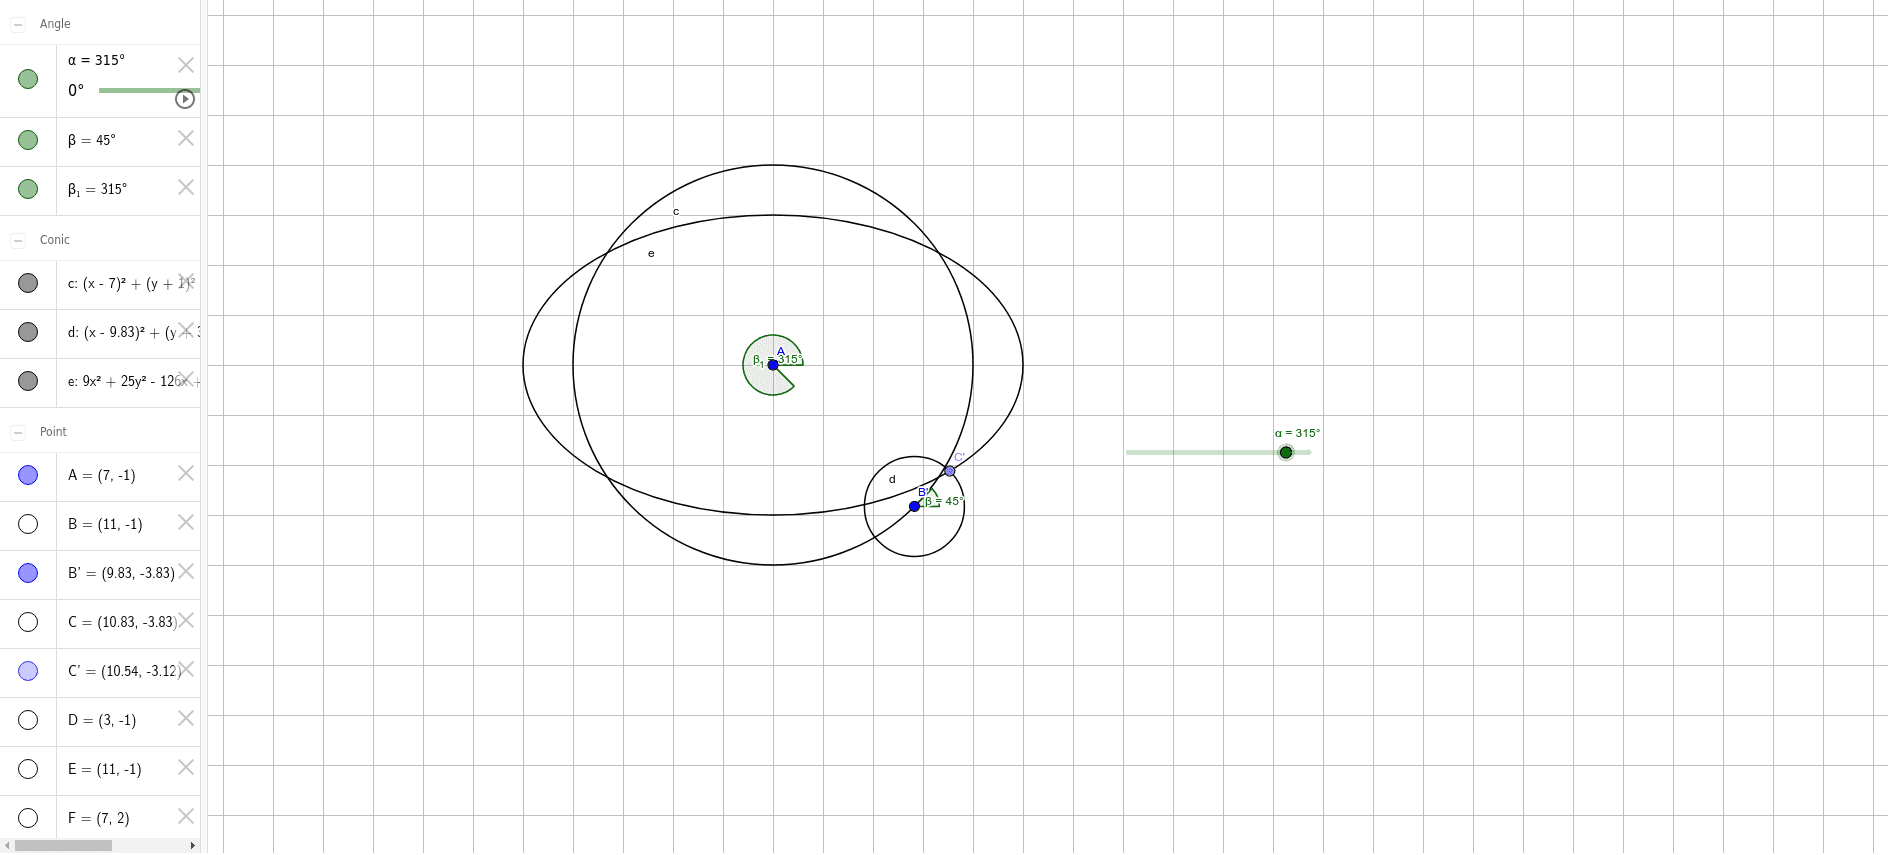 Note the path of point C'